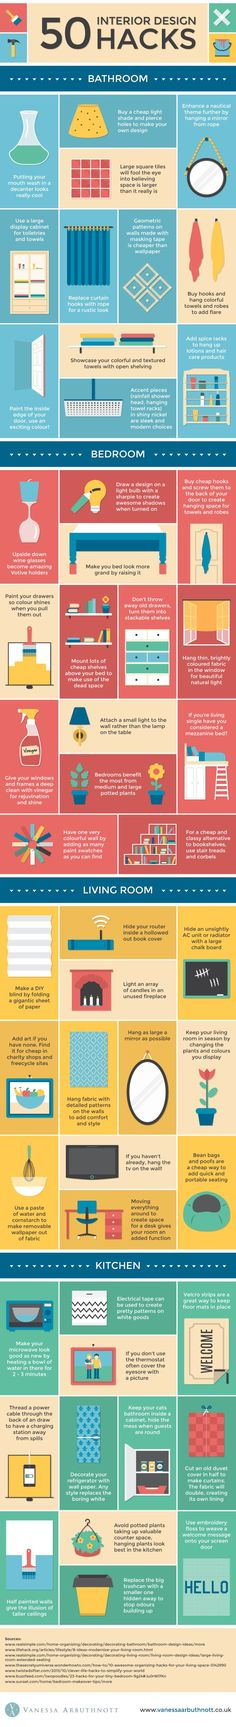 Home Storage & Organization|50 Home Interior Design Hacks|Vanessa Arbuthnott has made an infographic of interior design hacks that you can do yourself. There are 50 hacks,so try one.|By:Vanessa Arbuthnott|Source:casuable.com|This is a fantastic graphic with all kinds of sorted tips in one place to help you improve almost every room in your home. I know I'm going to try several of these ideas right away.